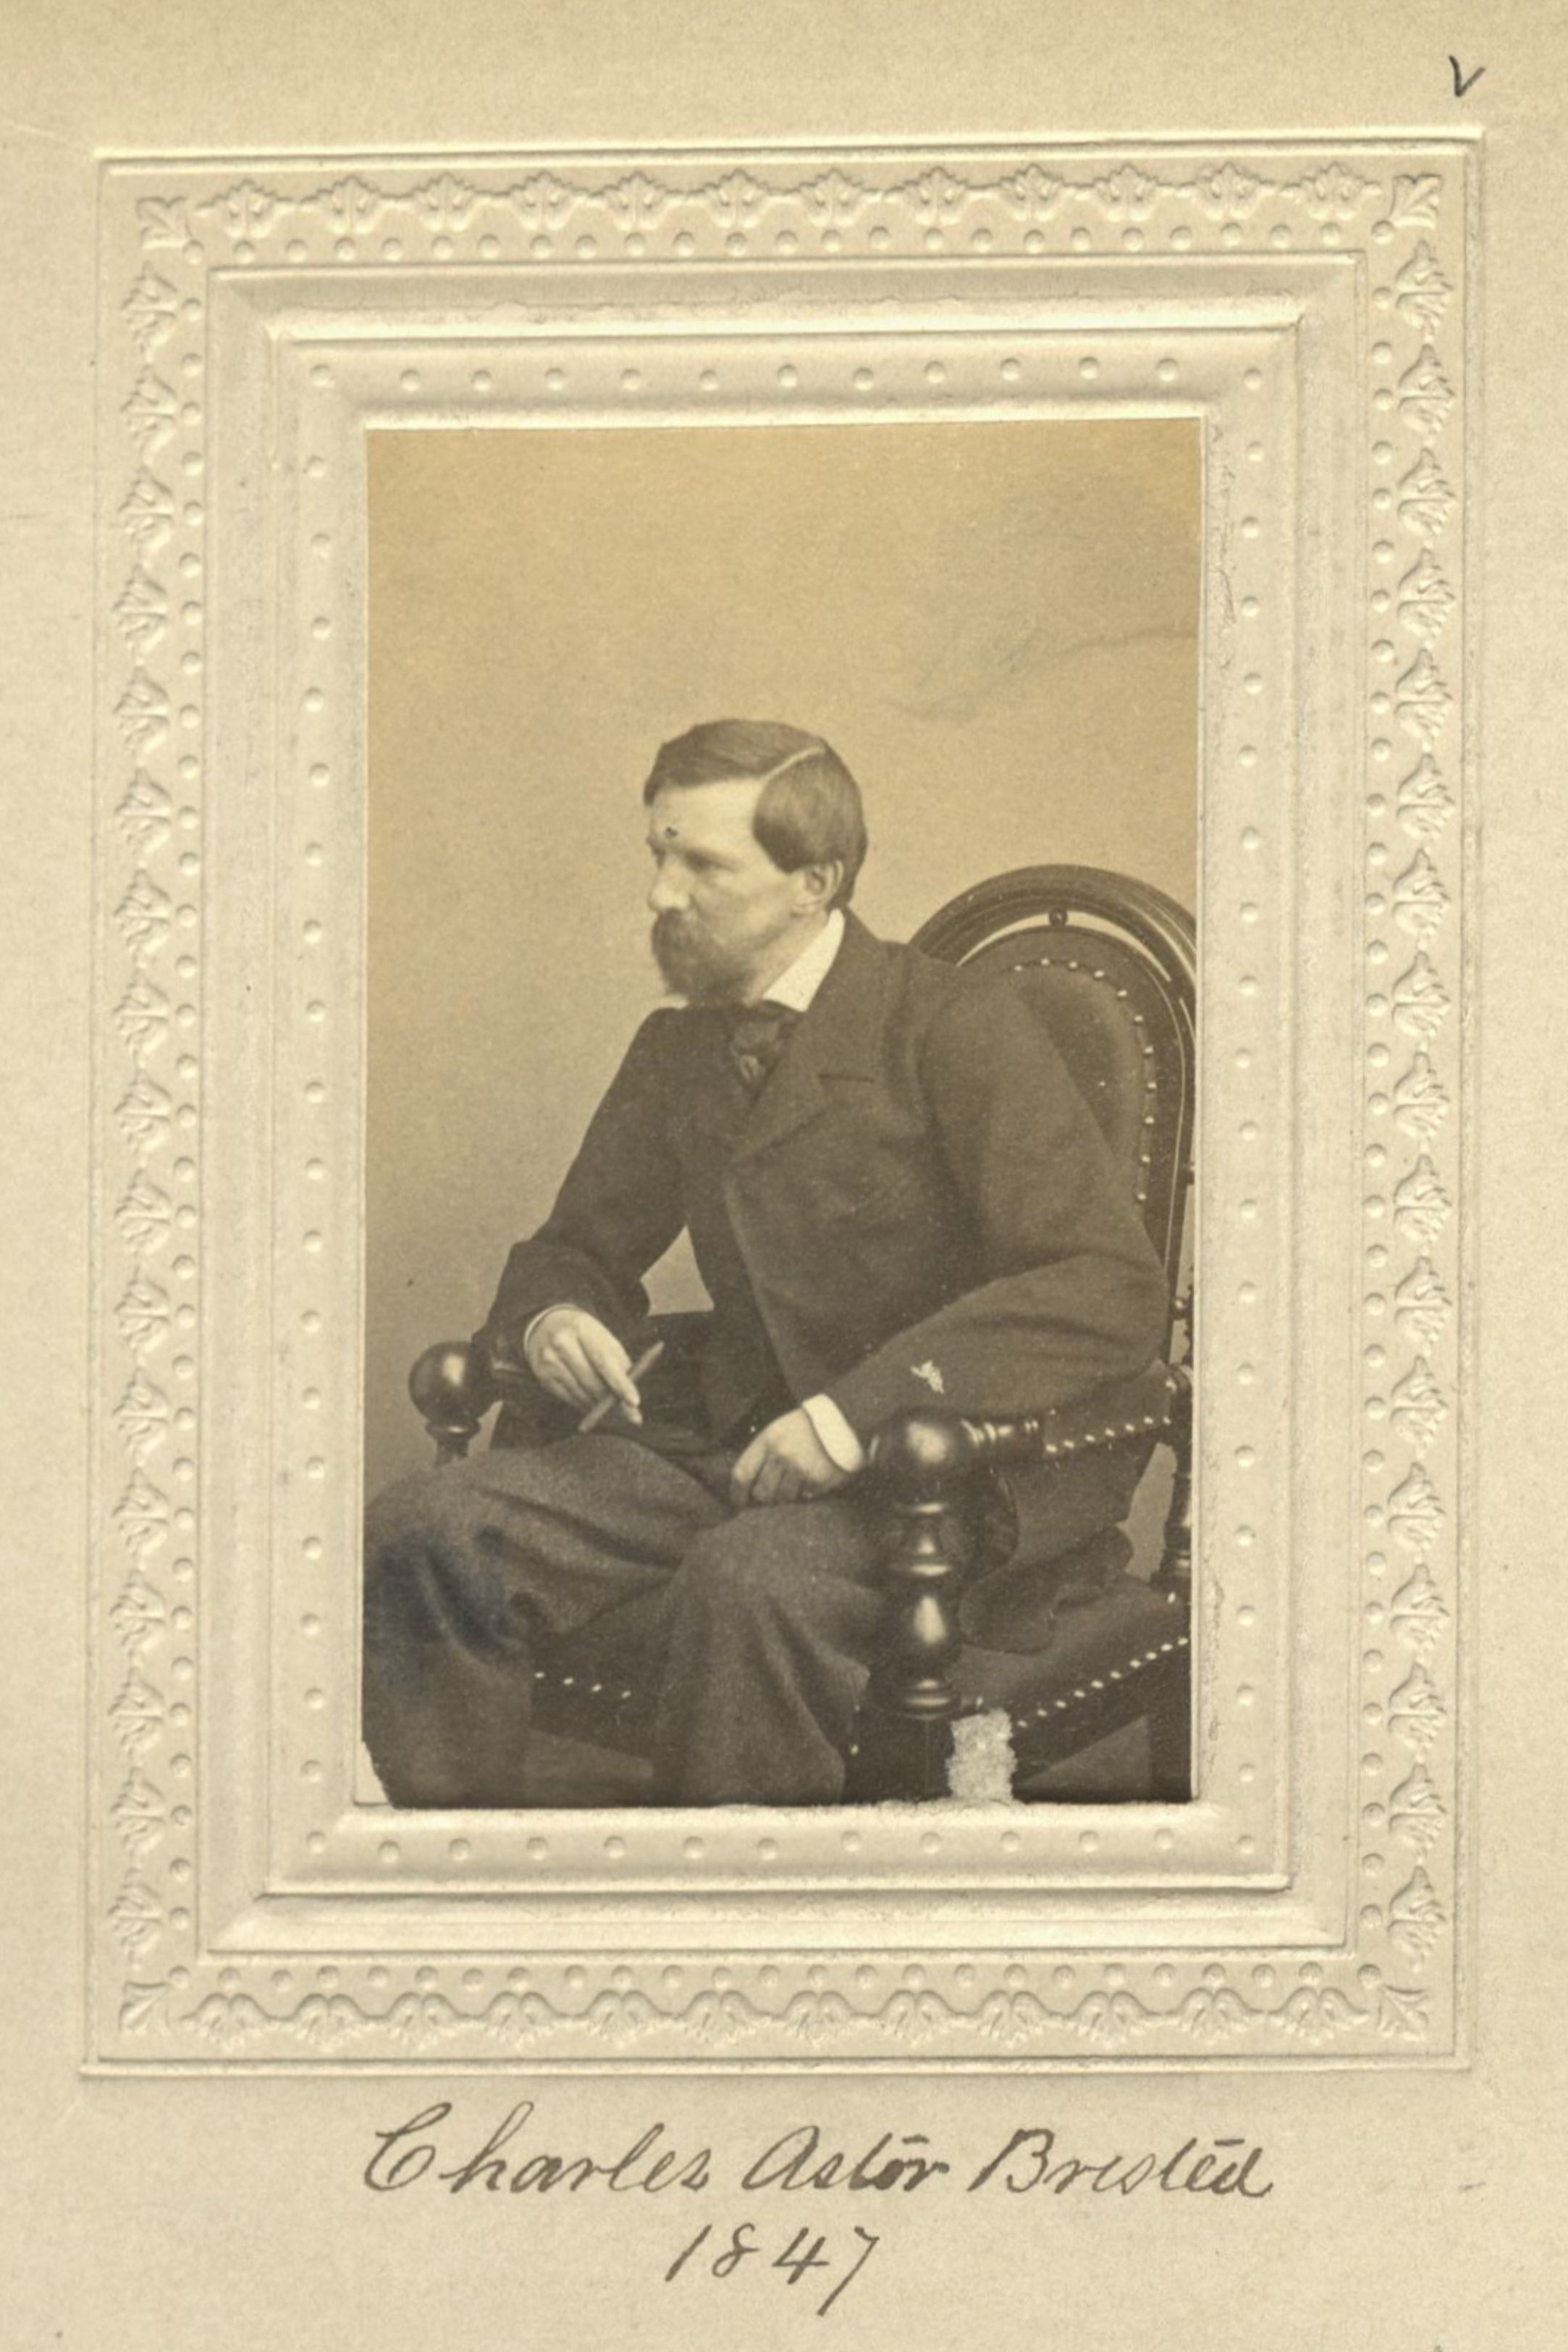 Member portrait of Charles A. Bristed